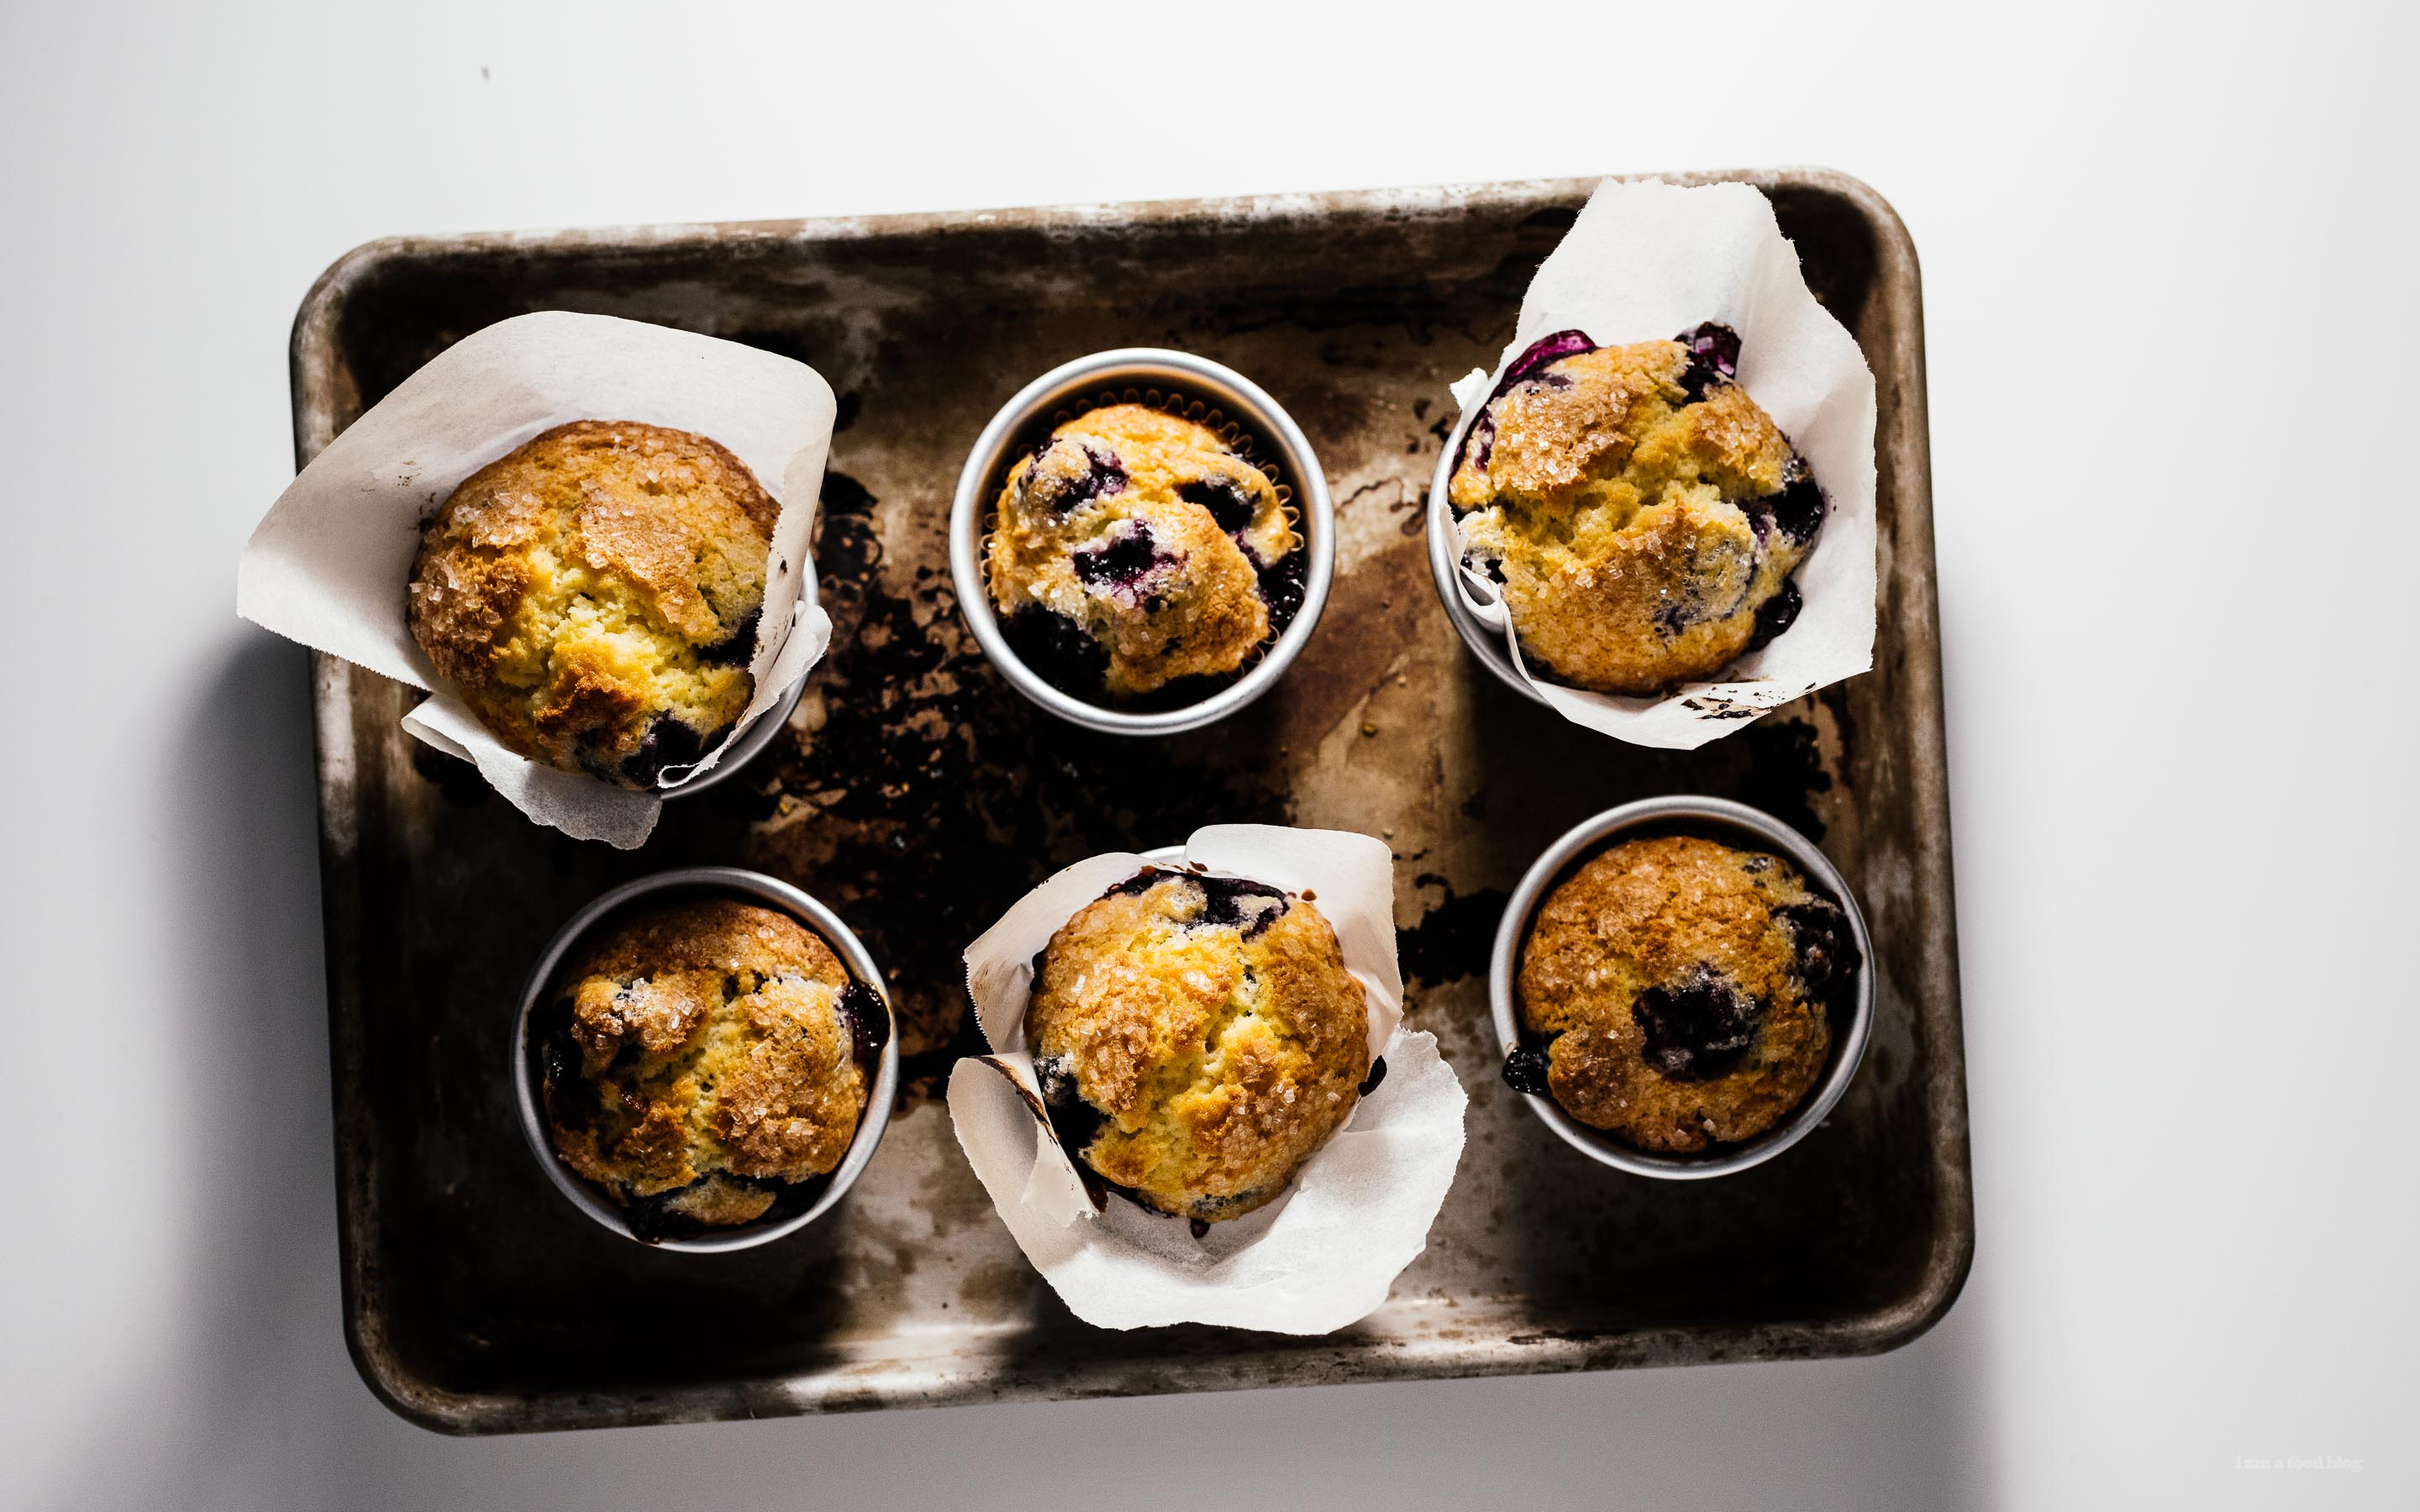 Jordan marshs blueberry muffins recipe i am a food blog i am a maybe youre wondering who is jordan marsh and why i made his blueberry muffins turns out jordan marshs blueberry muffins are famous forumfinder Images